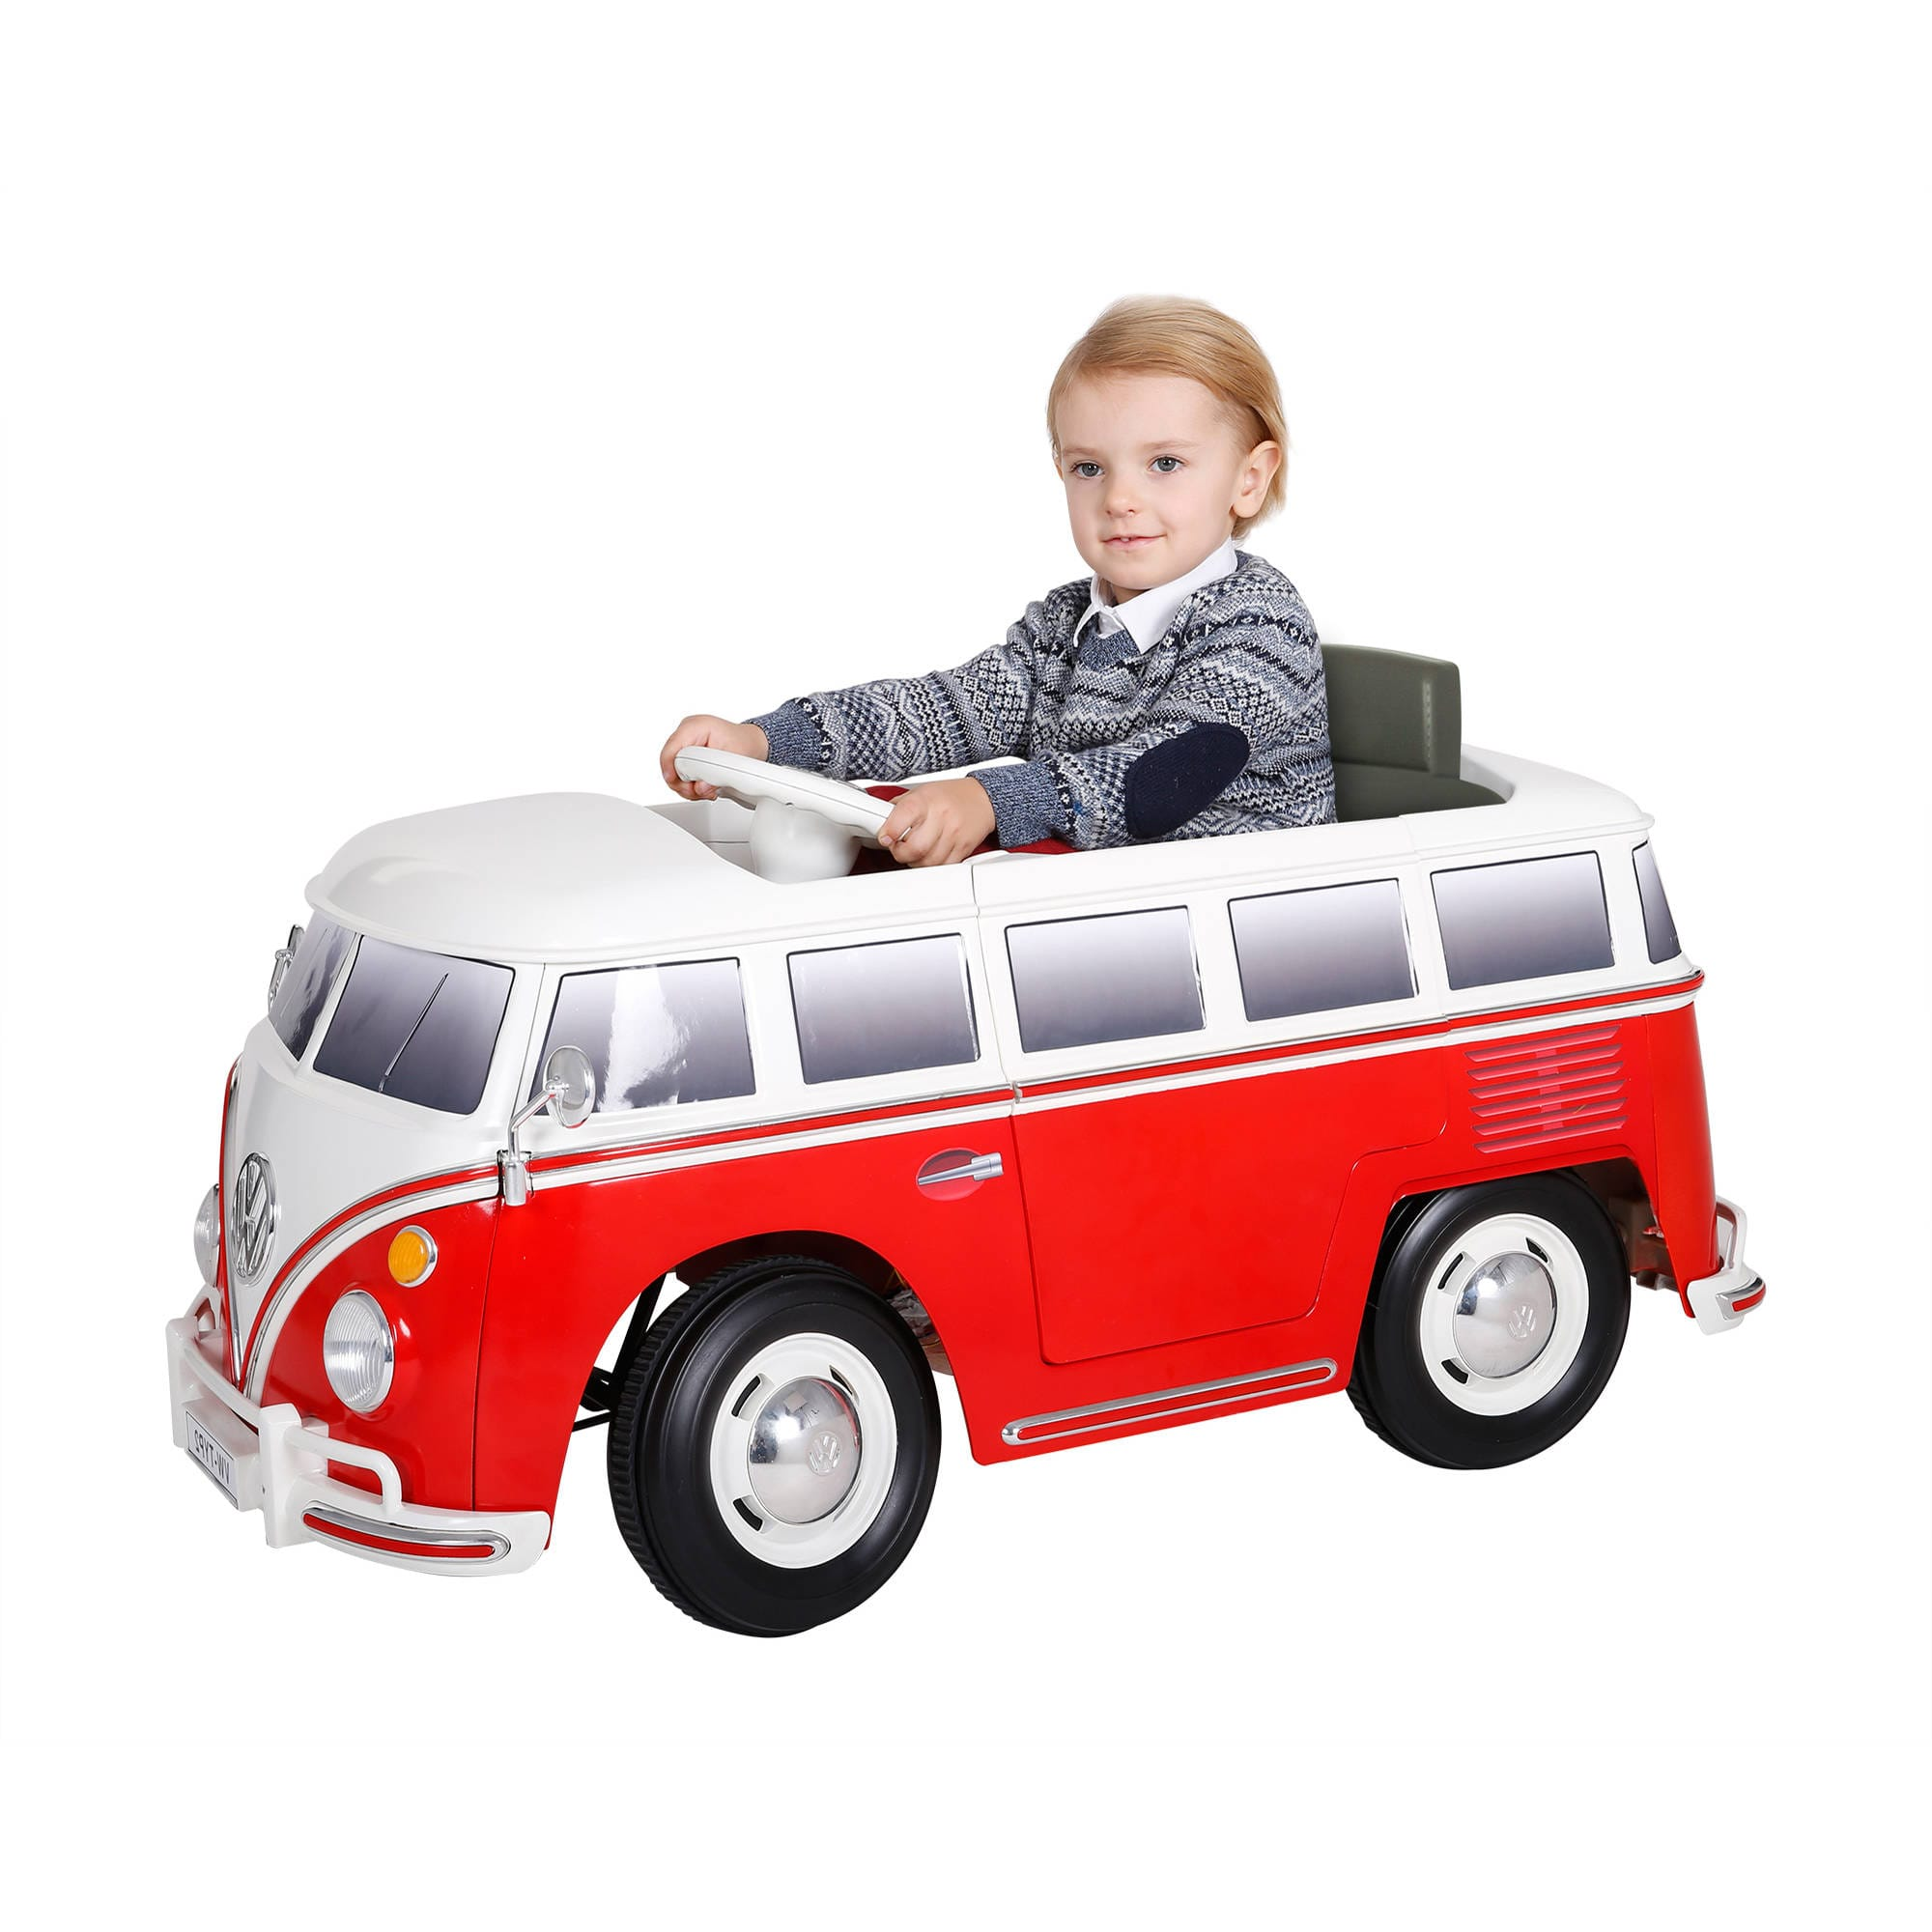 RollPlay 6V VW Bus Battery Powered Ride-On $109 + Free Shipping or Store Pickup!